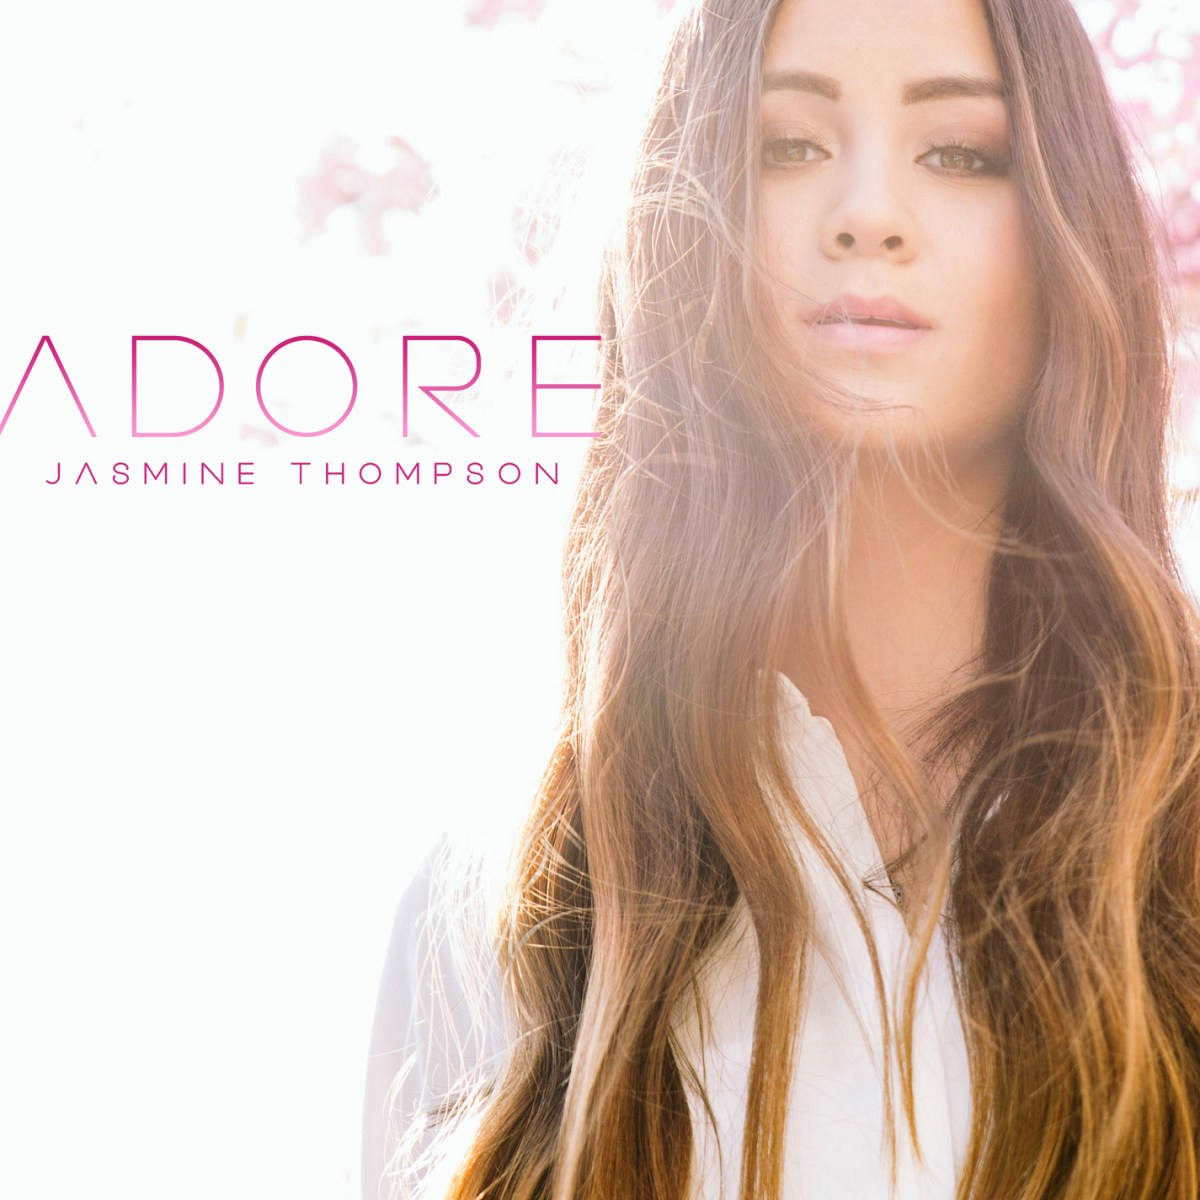 UK Singer-Songwriter Jasmine Thompson Unveils New Single, 'Adore'